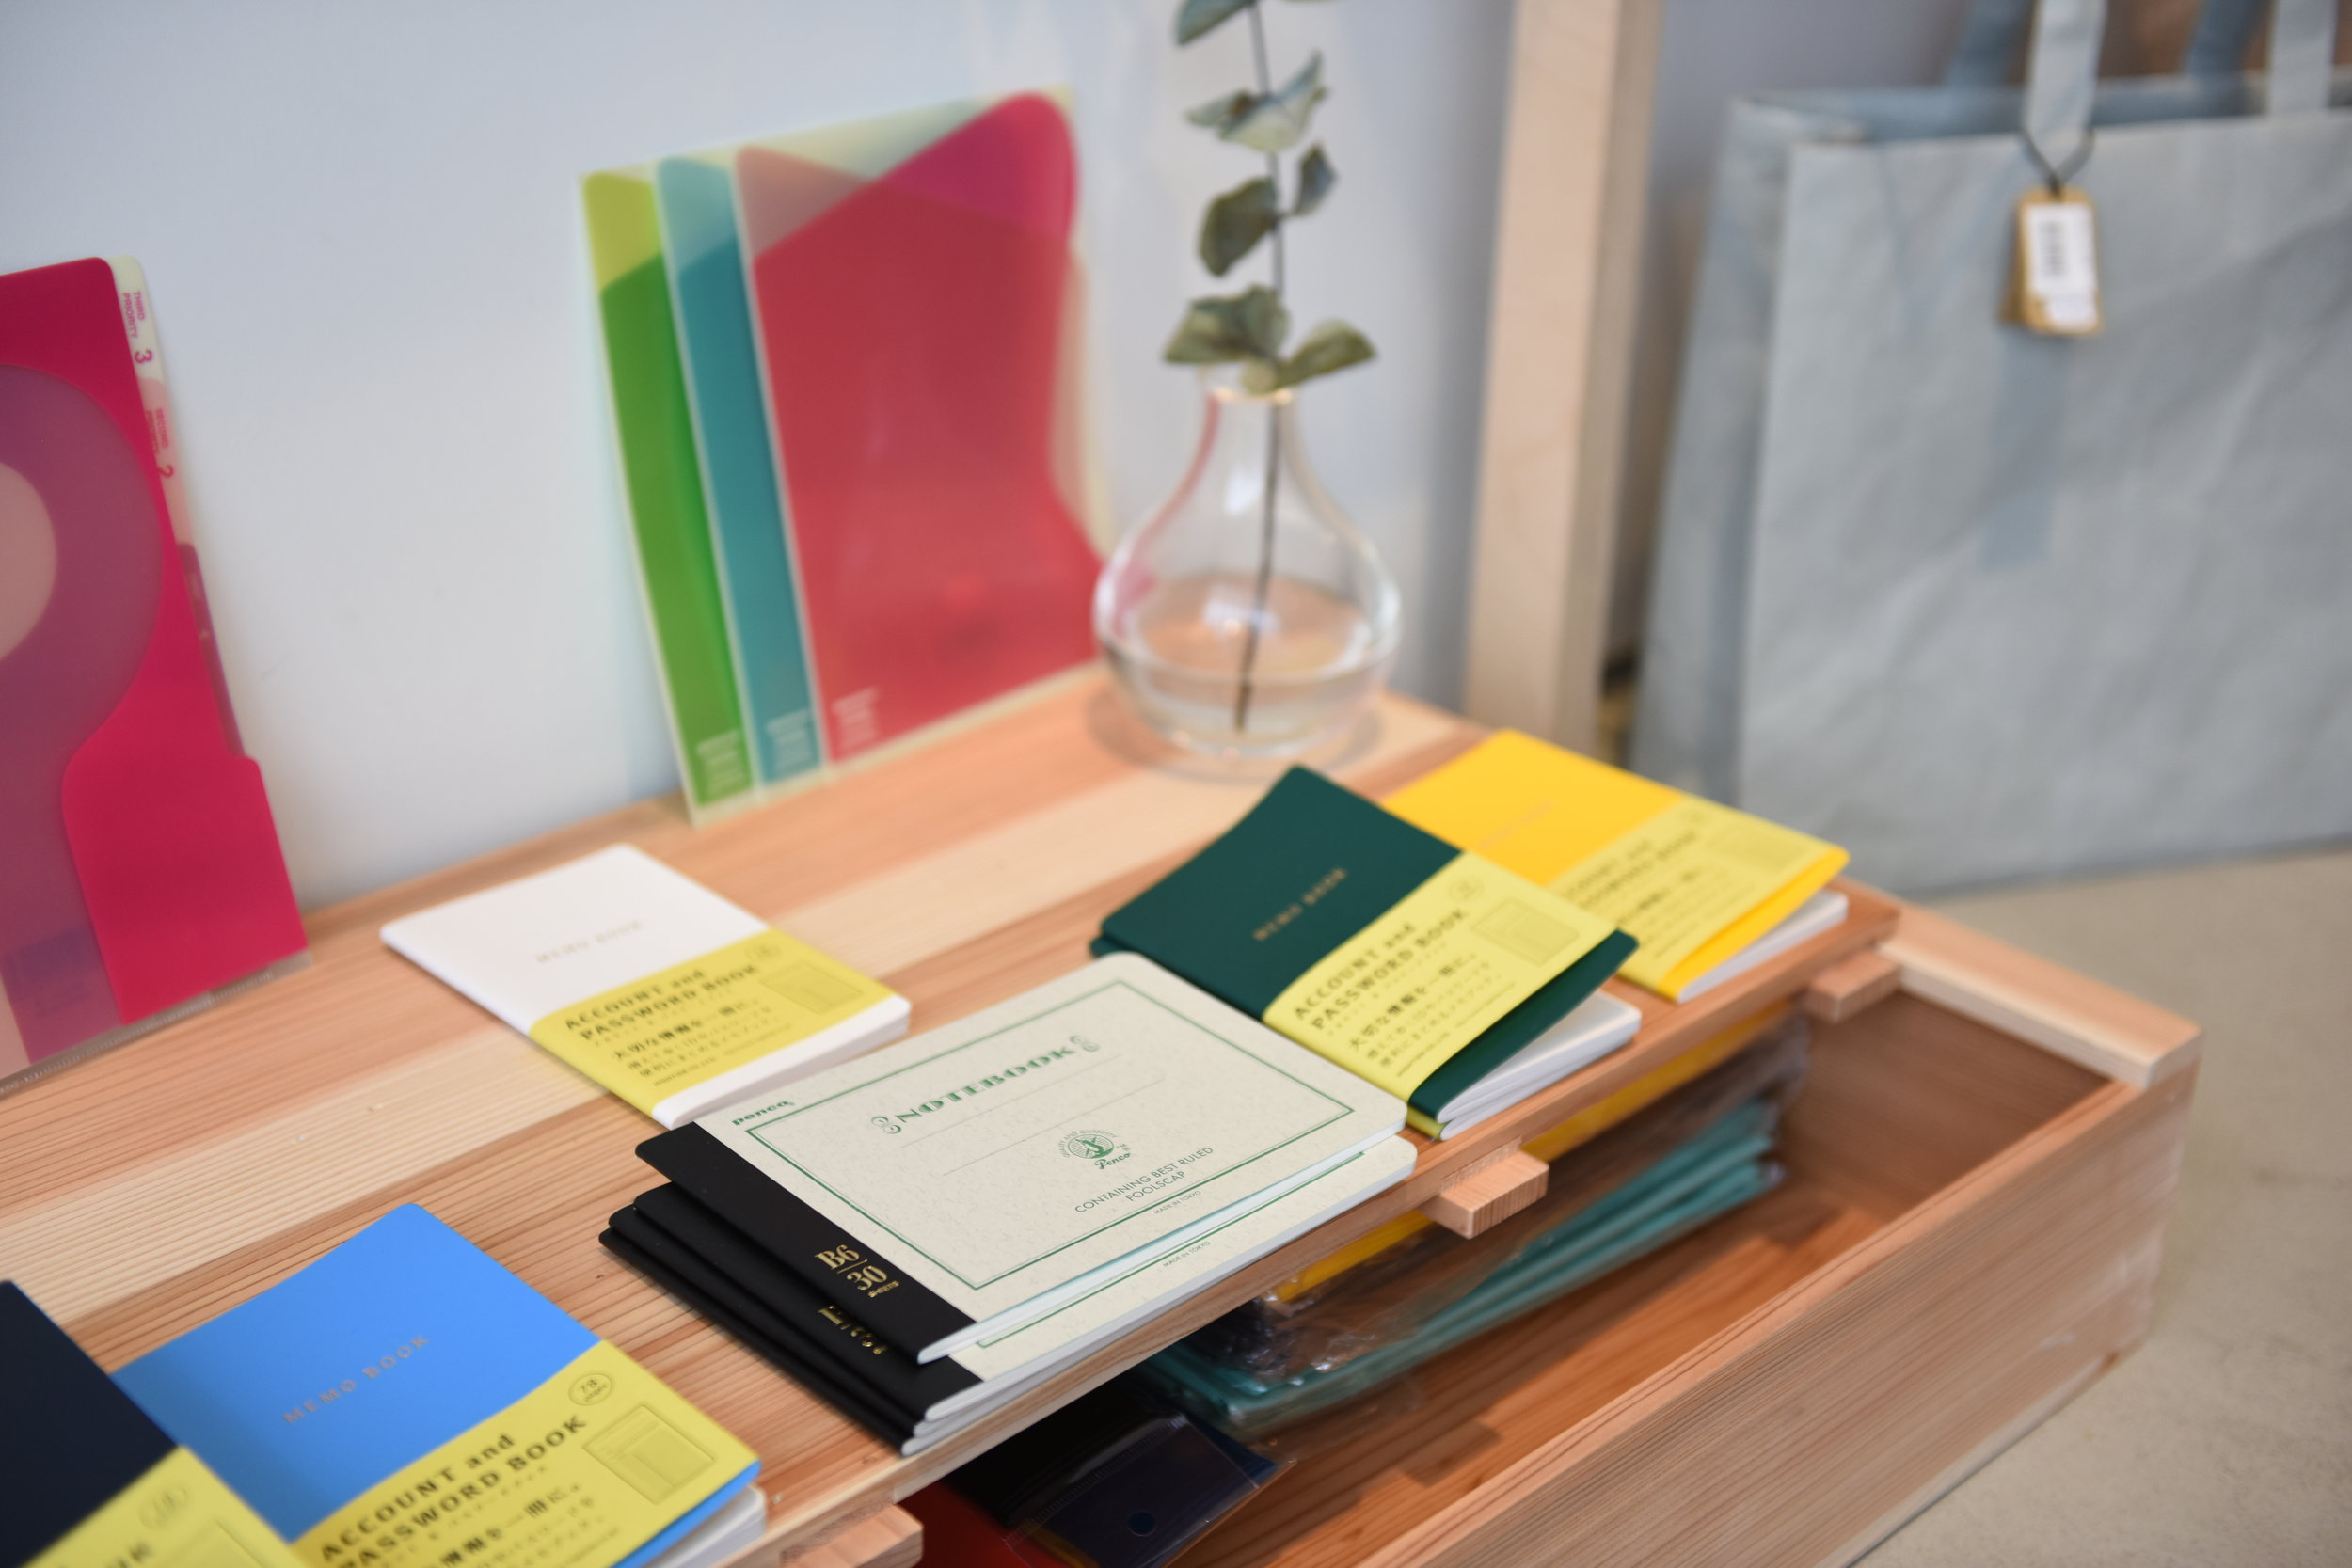 Hightide Notebook and Office Desk Accessories